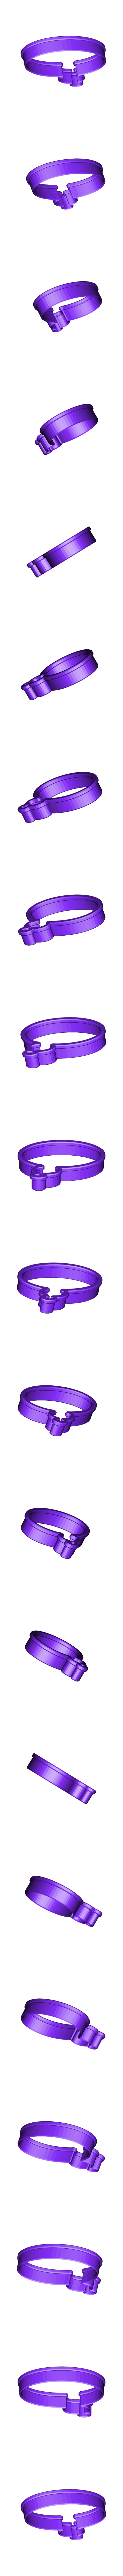 Word Bubble 2 Cookie Cutter.stl Download free STL file Word Bubble 2 Cookie Cutter • 3D printer template, 3DBuilder